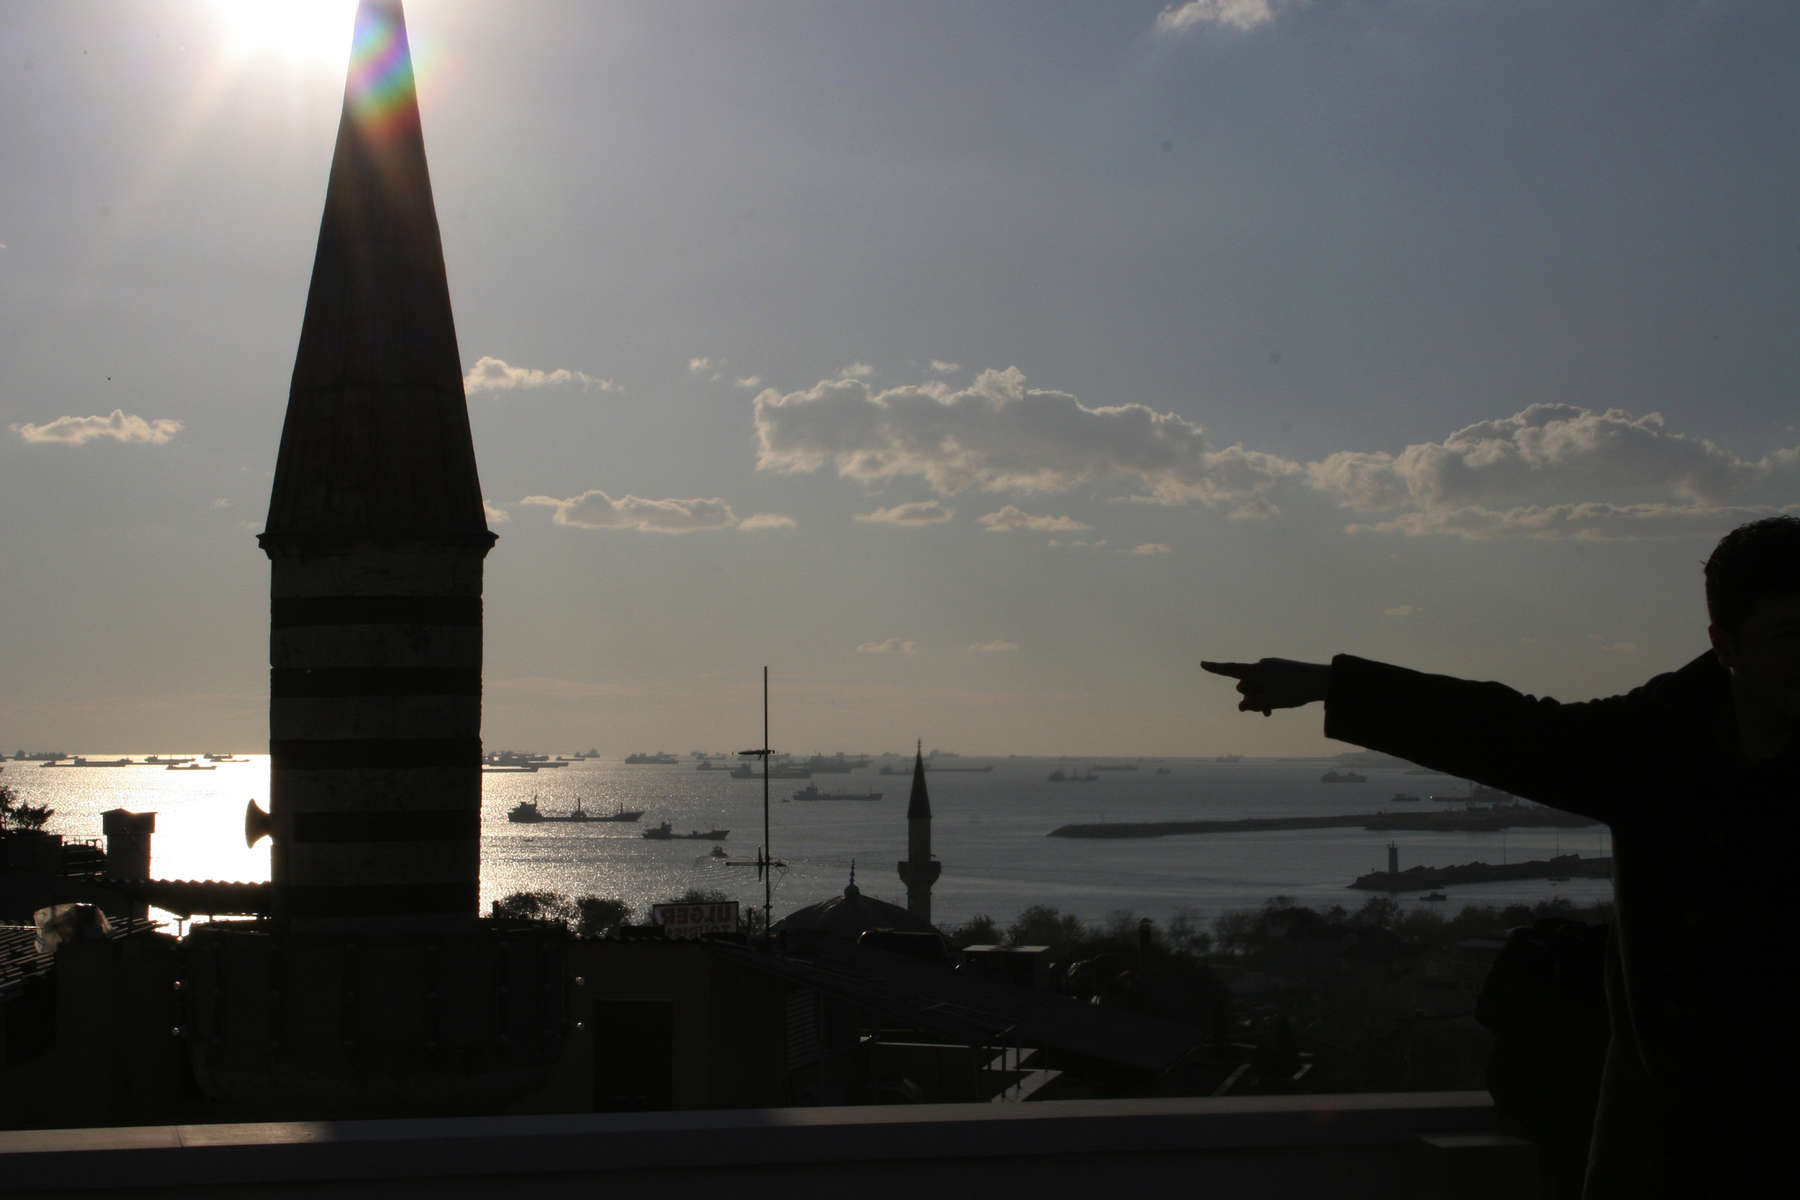 With the minaret of a mosque in the foreground, a man standing on a rooftop in the old Sultanahmet neighorhood of Istanbul points at the numerous freighters that constantly ply the Marmara Sea as they prepare to head up the Bosphorus Straits to the Black Sea.